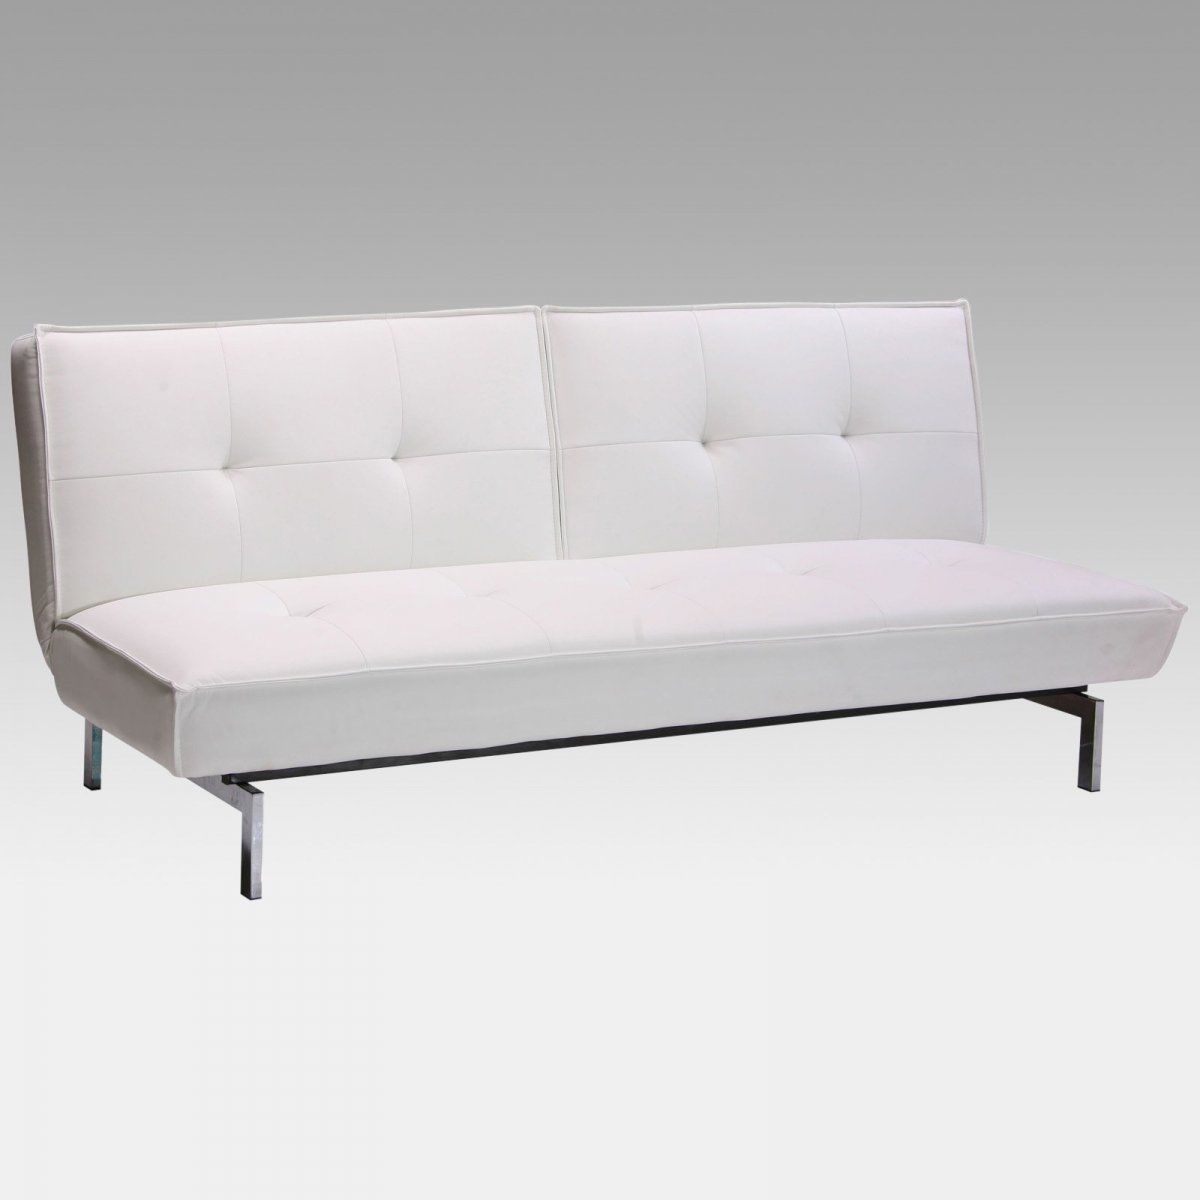 beautiful sofa legs walmart construction-Fresh sofa Legs Walmart Plan